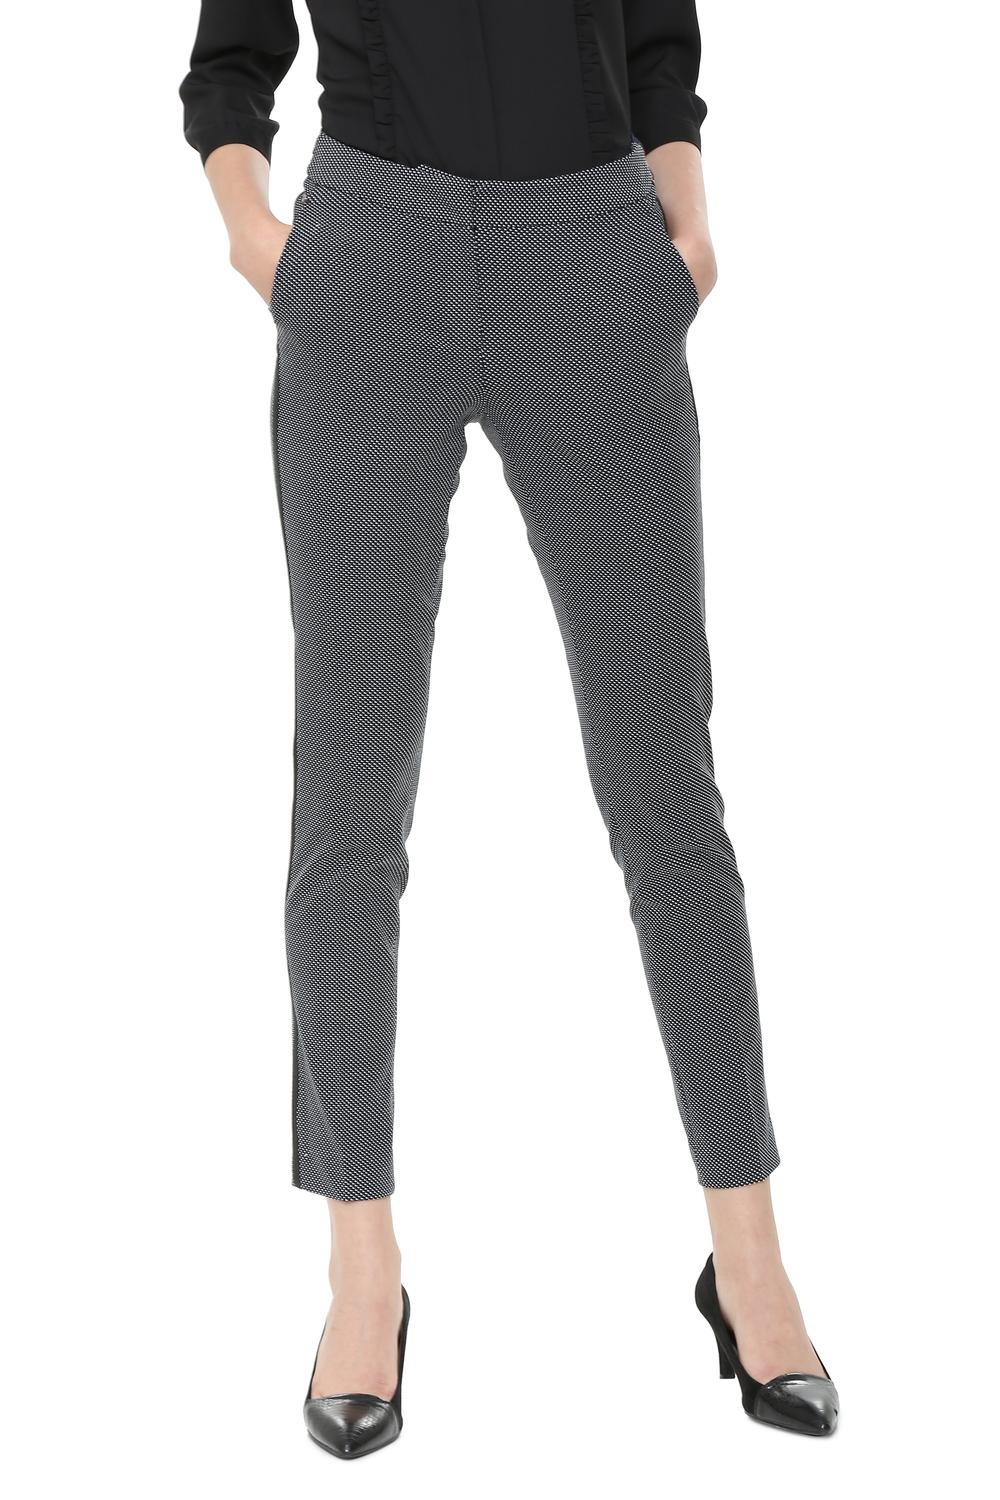 4dc45bdaeb953c Solly Trousers & Leggings, Allen Solly Navy Trousers for Women at Allensolly .com